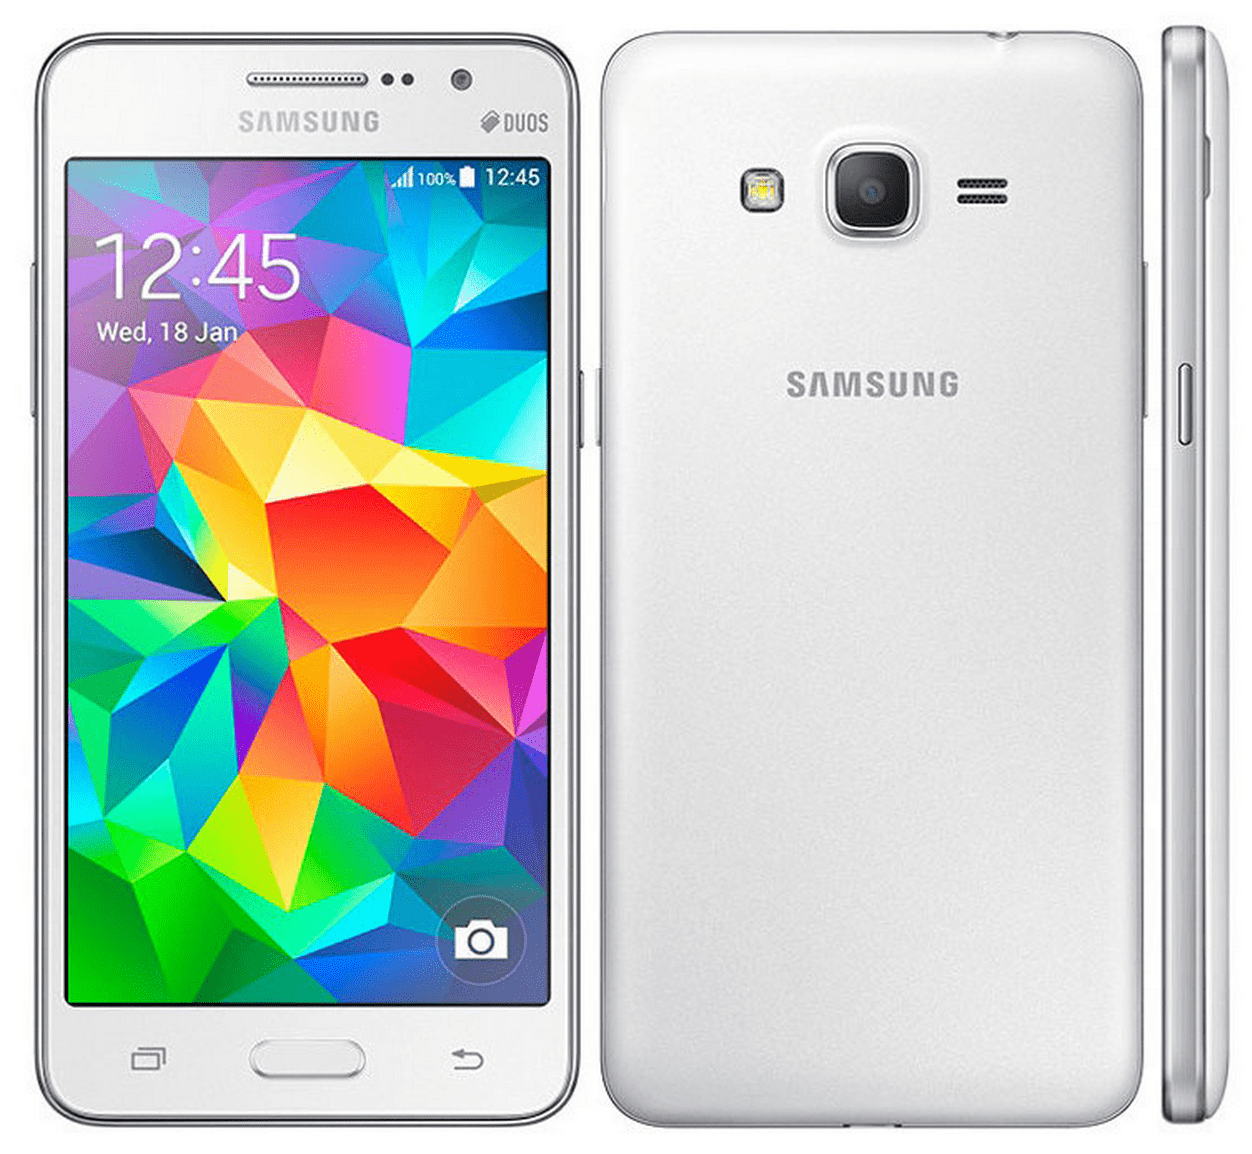 Samsung Galaxy Grand Prime Gets Android 5.1.1 Lollipop 1